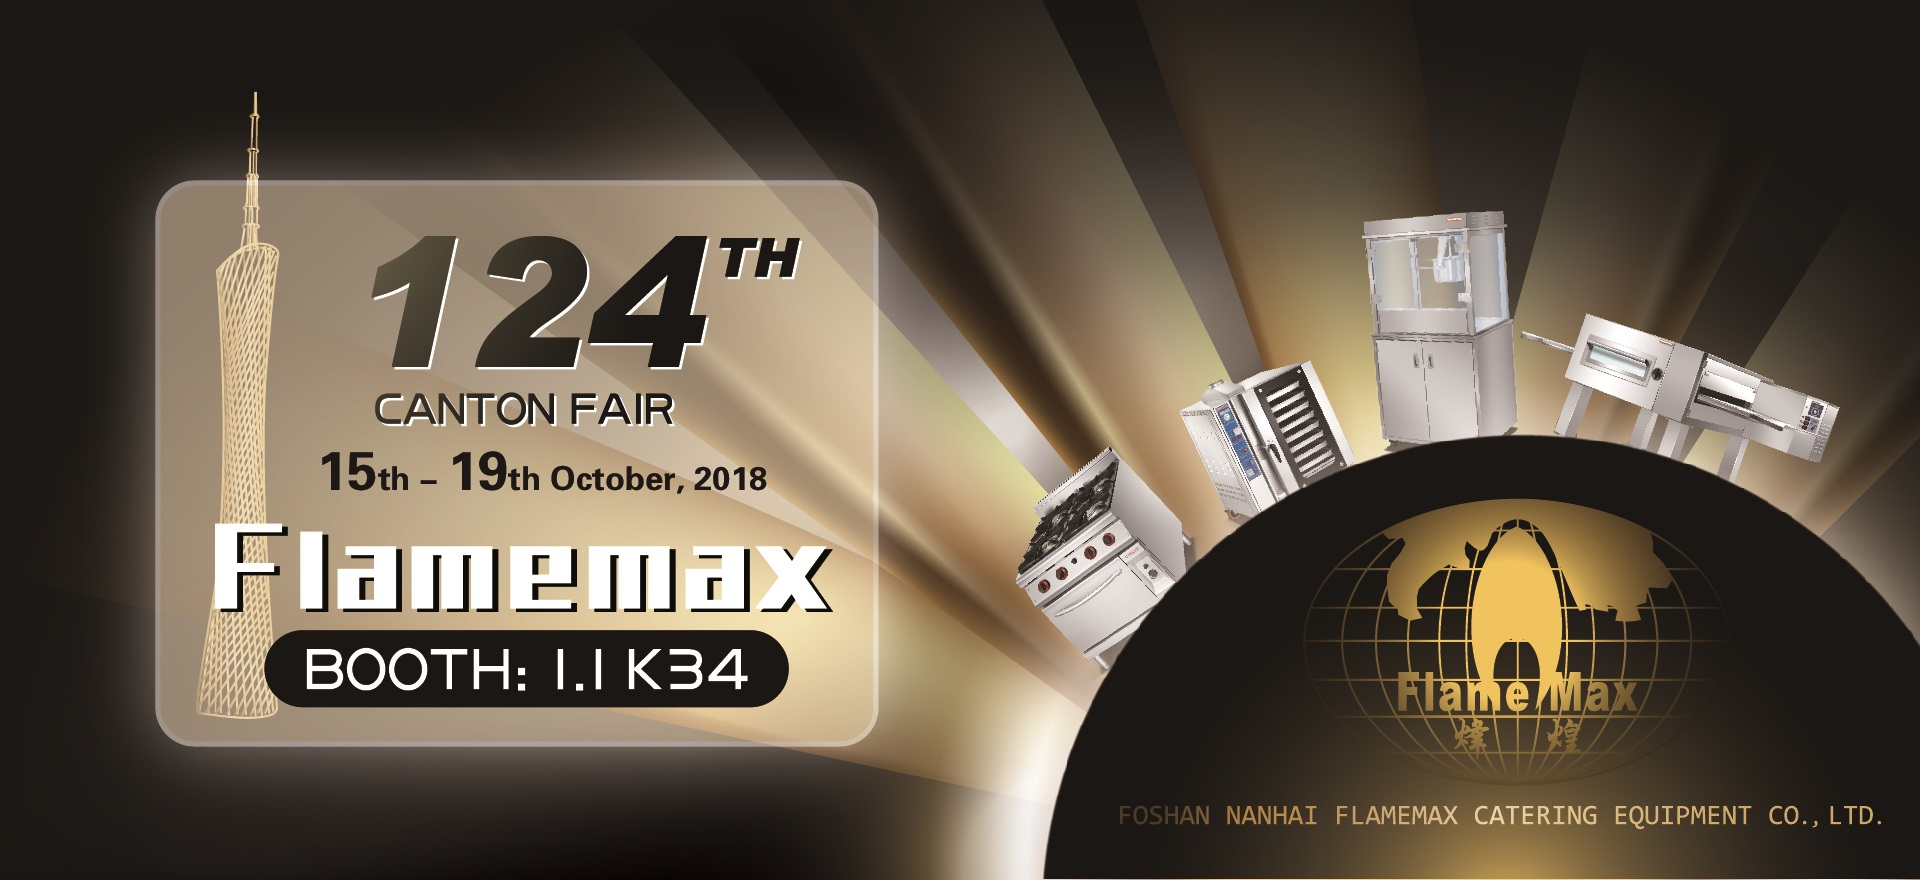 Canton Fair Flamemax Booth No. 1.1 K34